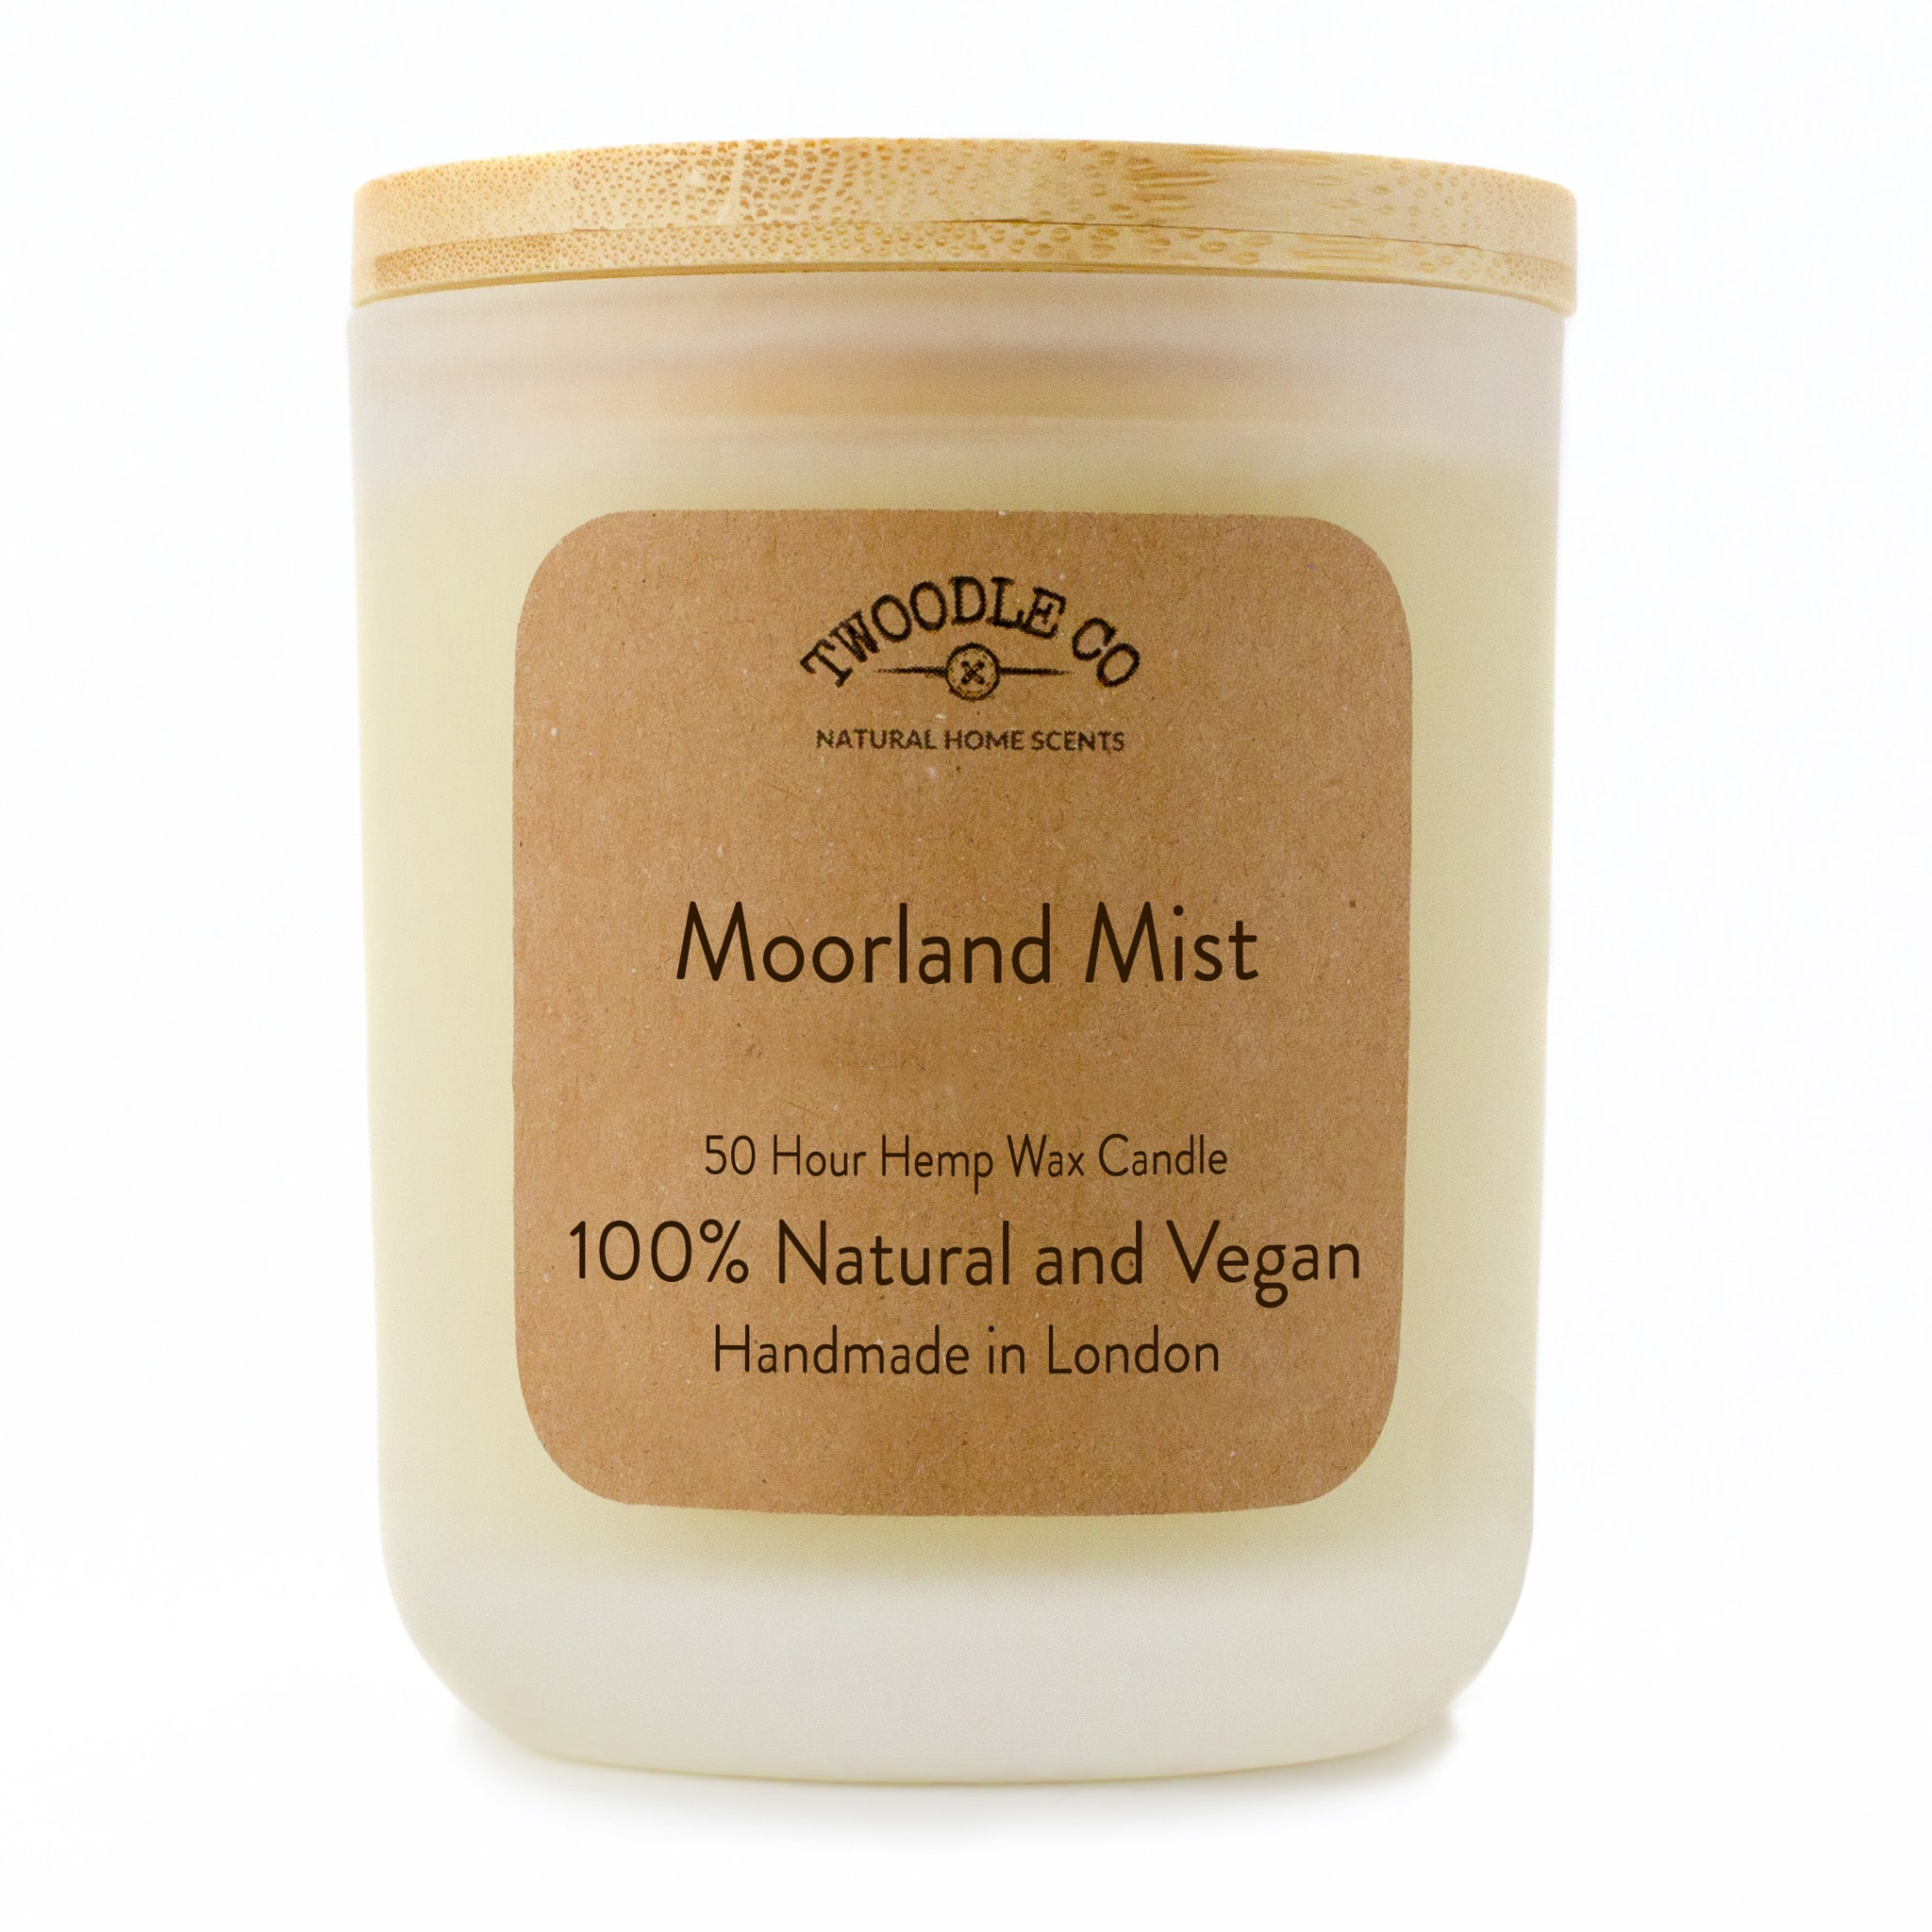 Twoodle Co Medium Scented Candle Moorland Mist